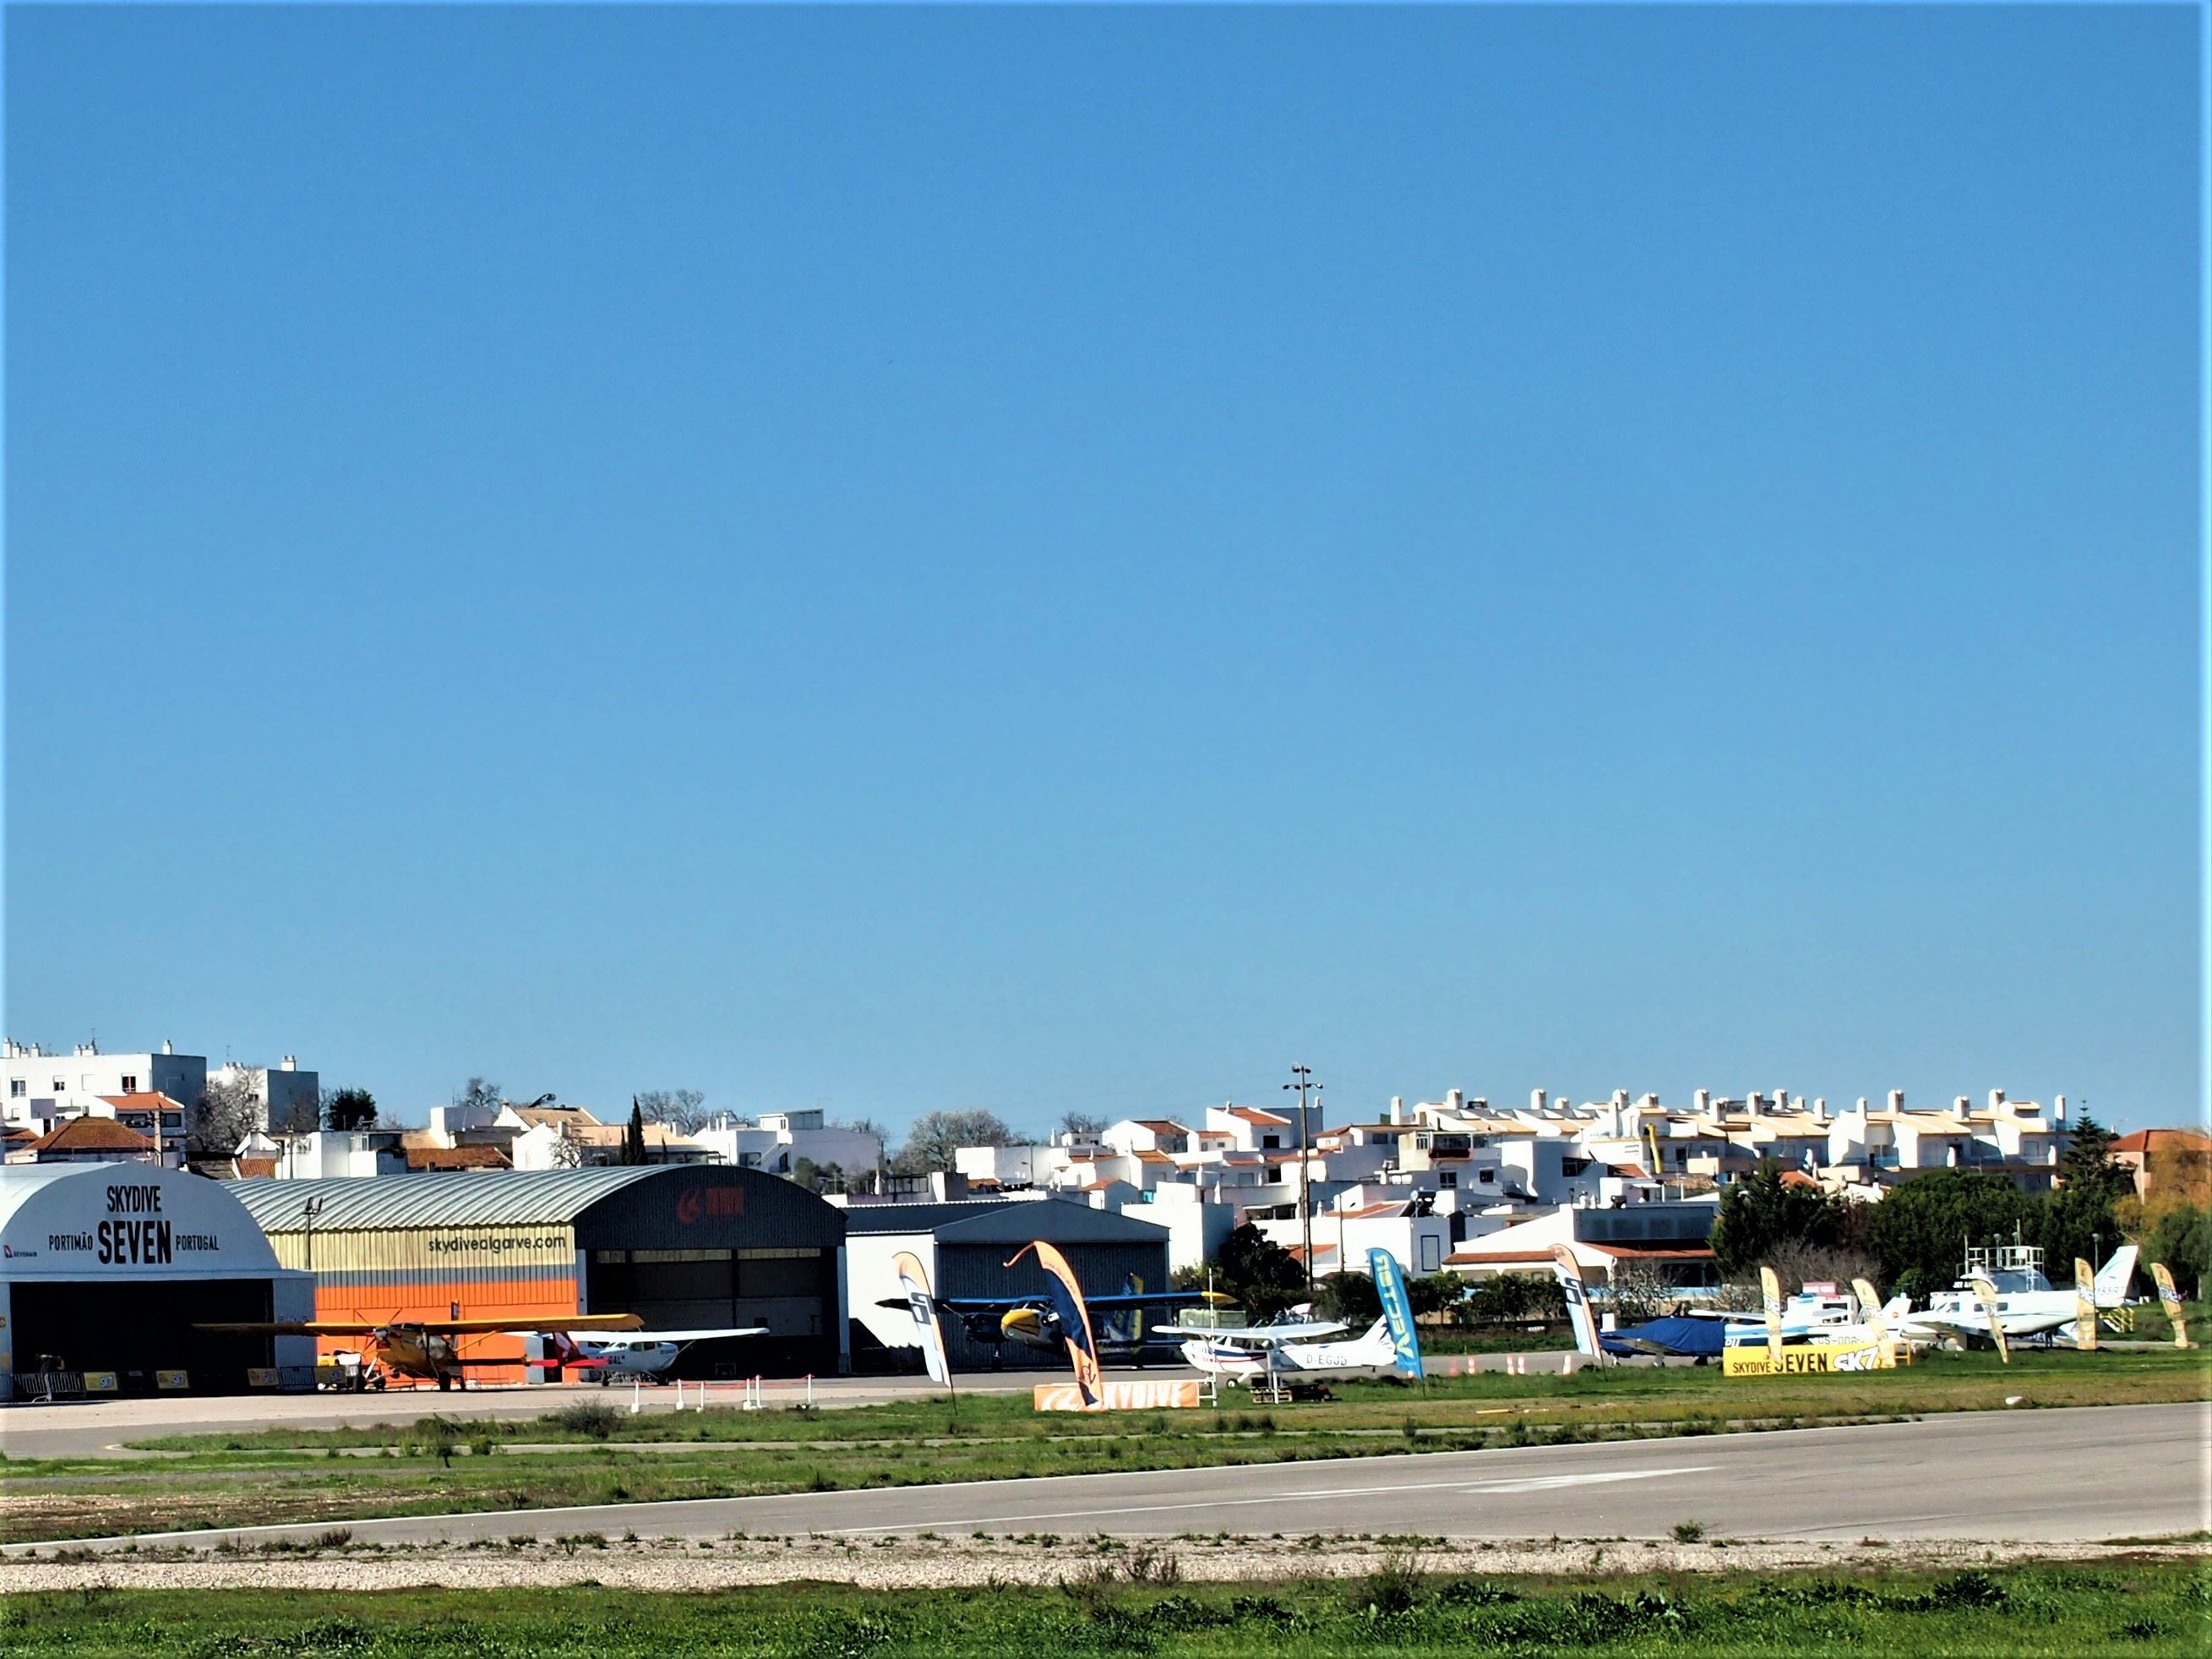 Alvor aerodrome or Portimão airport - airport code is PRM. Take a scheduled flight to Cascais, Lisbon